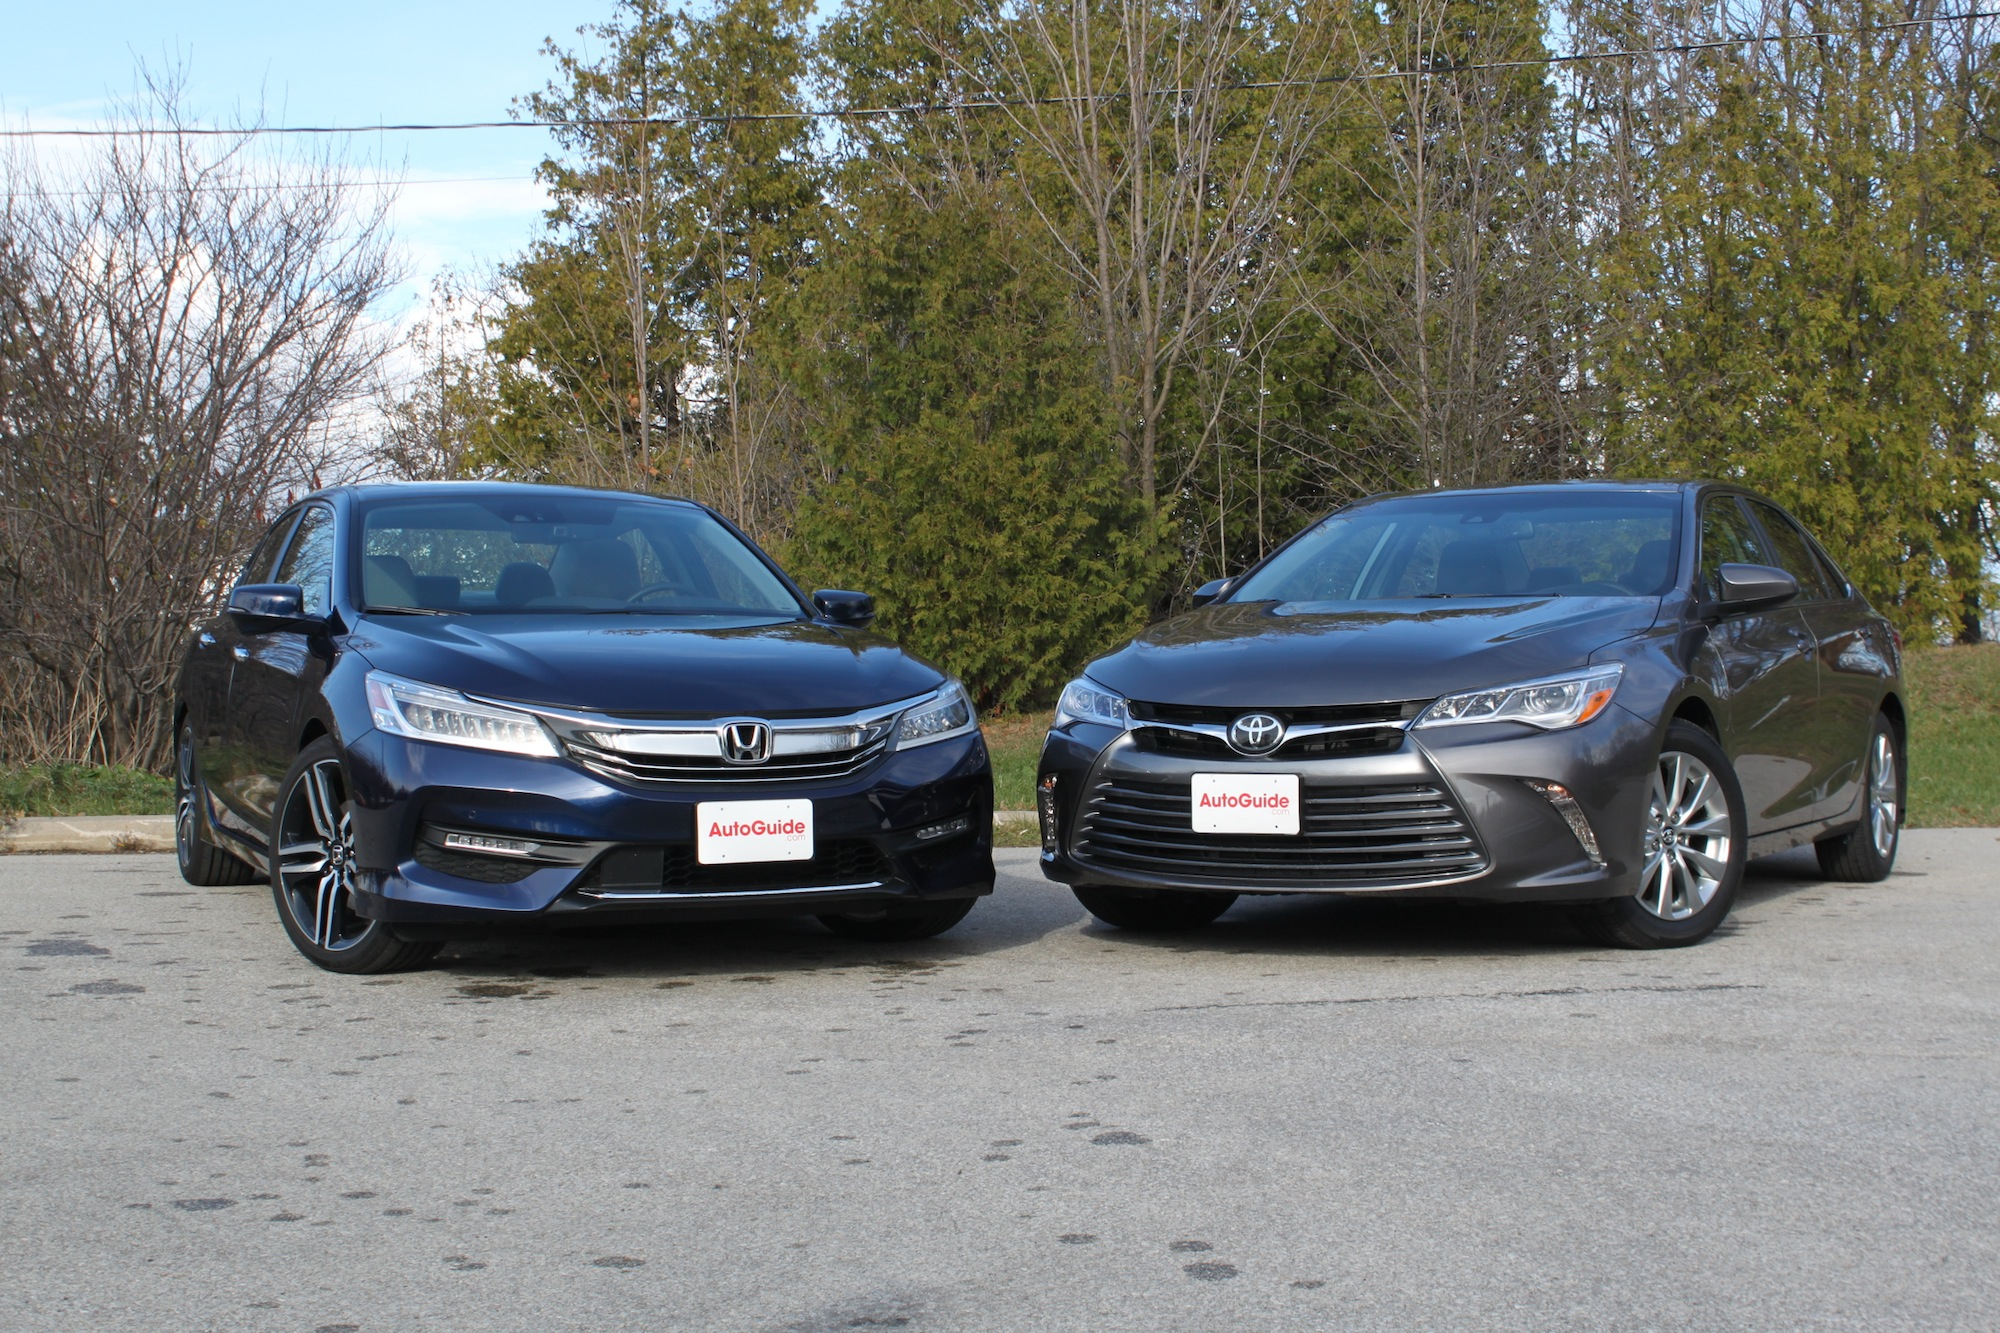 2016 honda accord vs 2016 toyota camry news. Black Bedroom Furniture Sets. Home Design Ideas